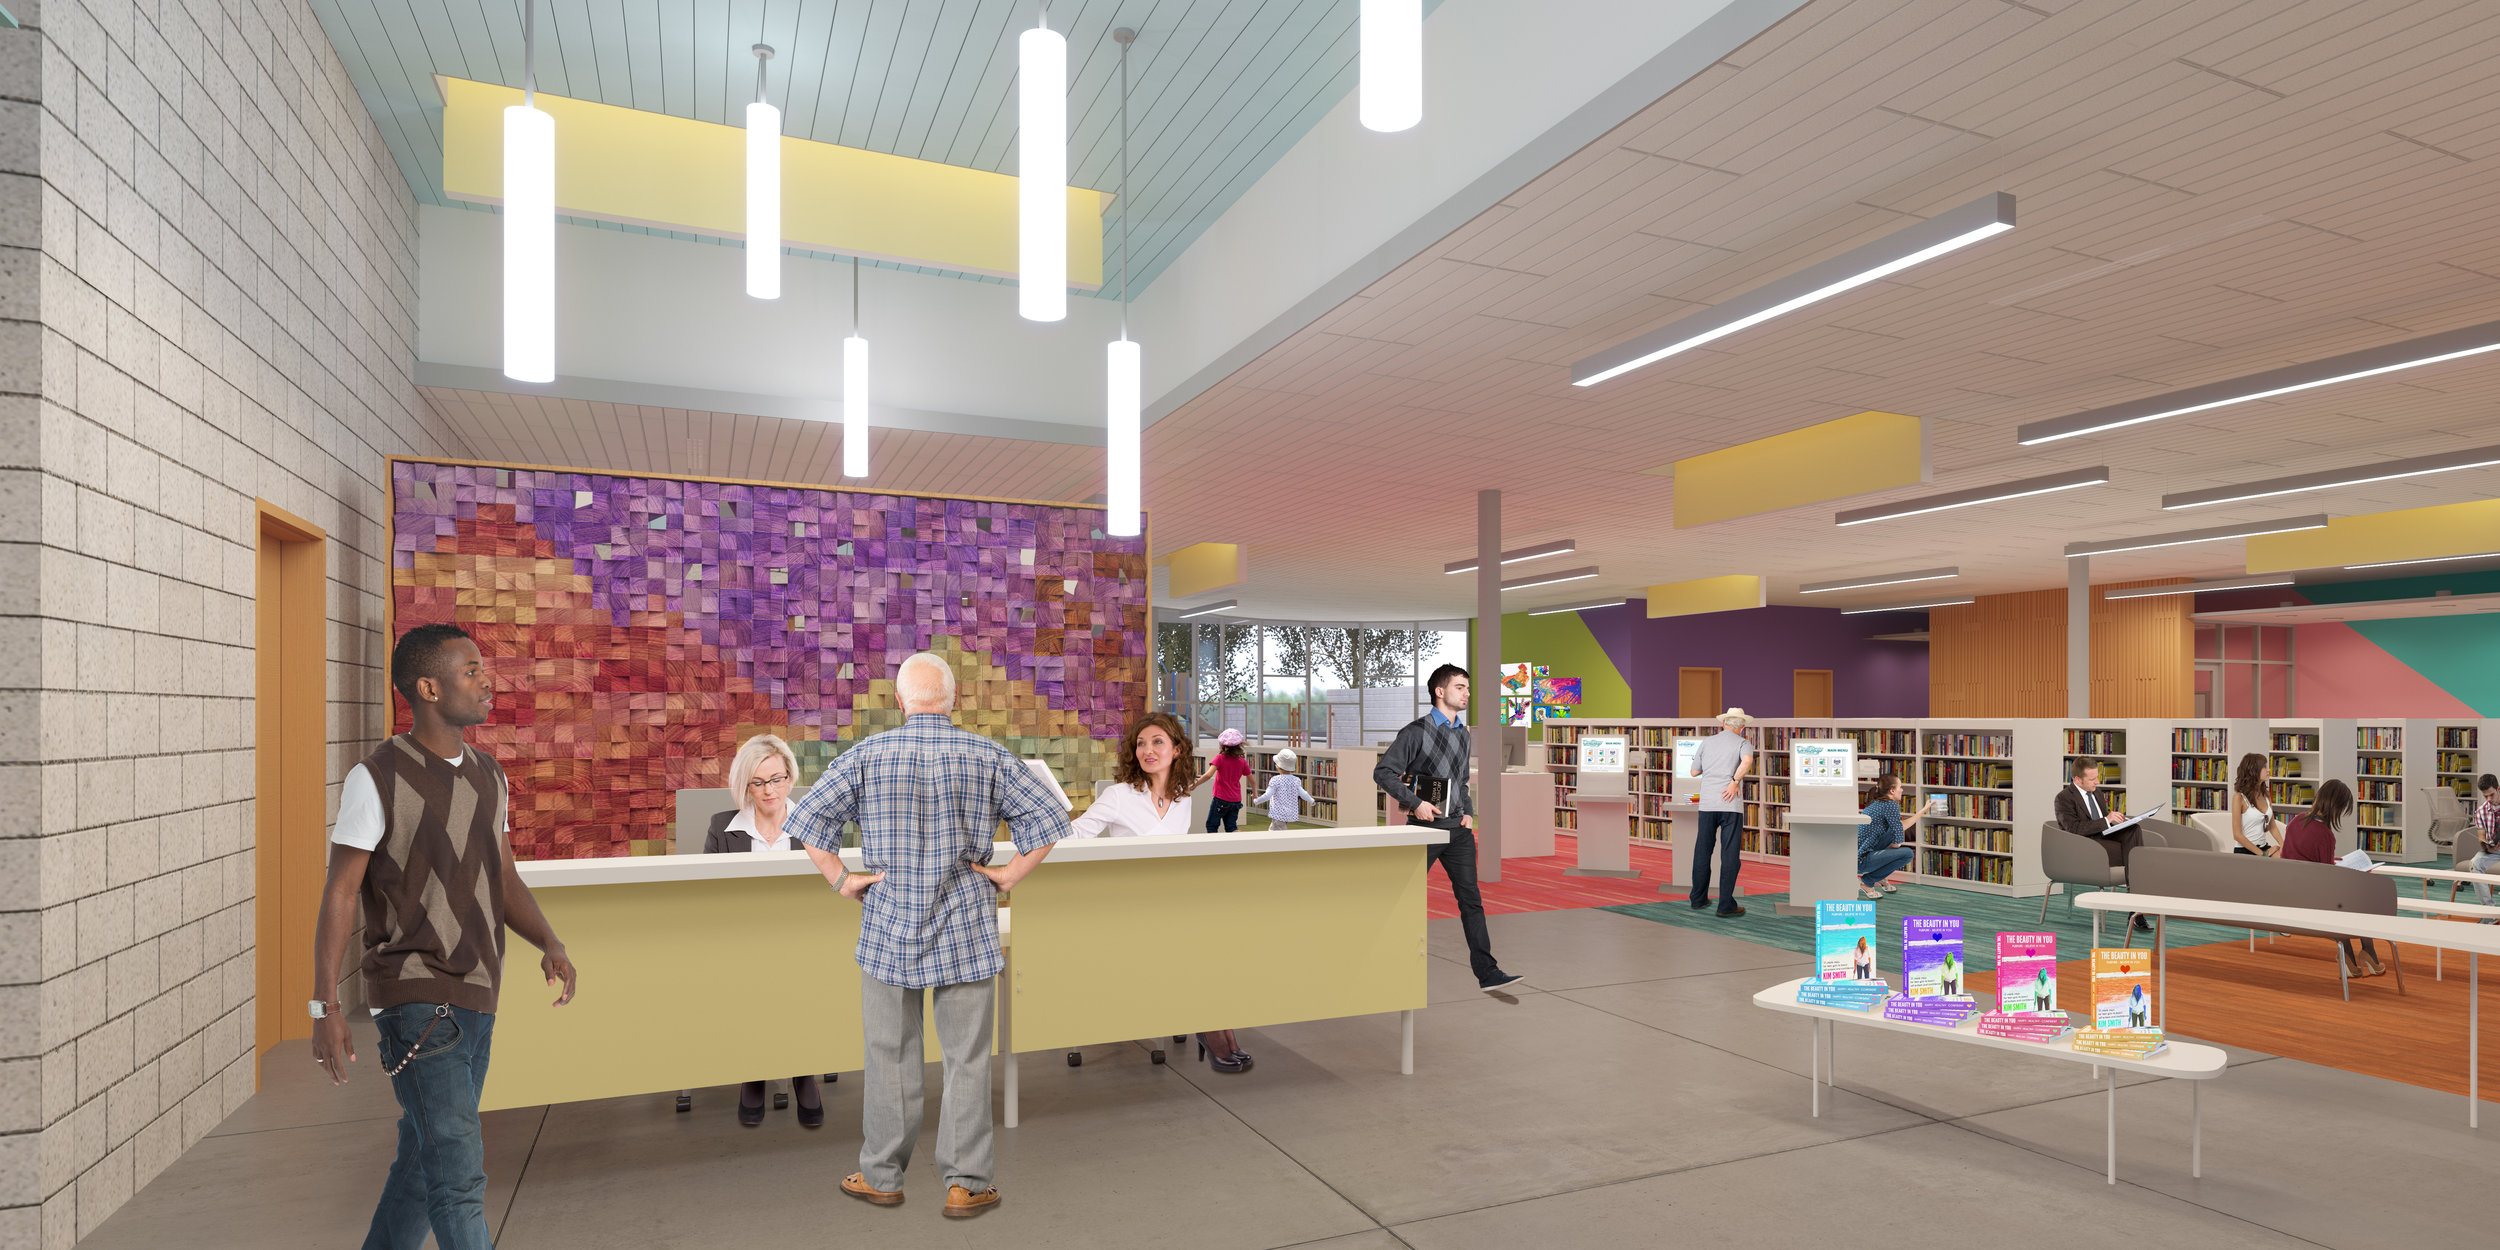 Interior view of main Library Hero's Wall and welcome desk. (Rendering courtesy of Simpson Coulter Studio)